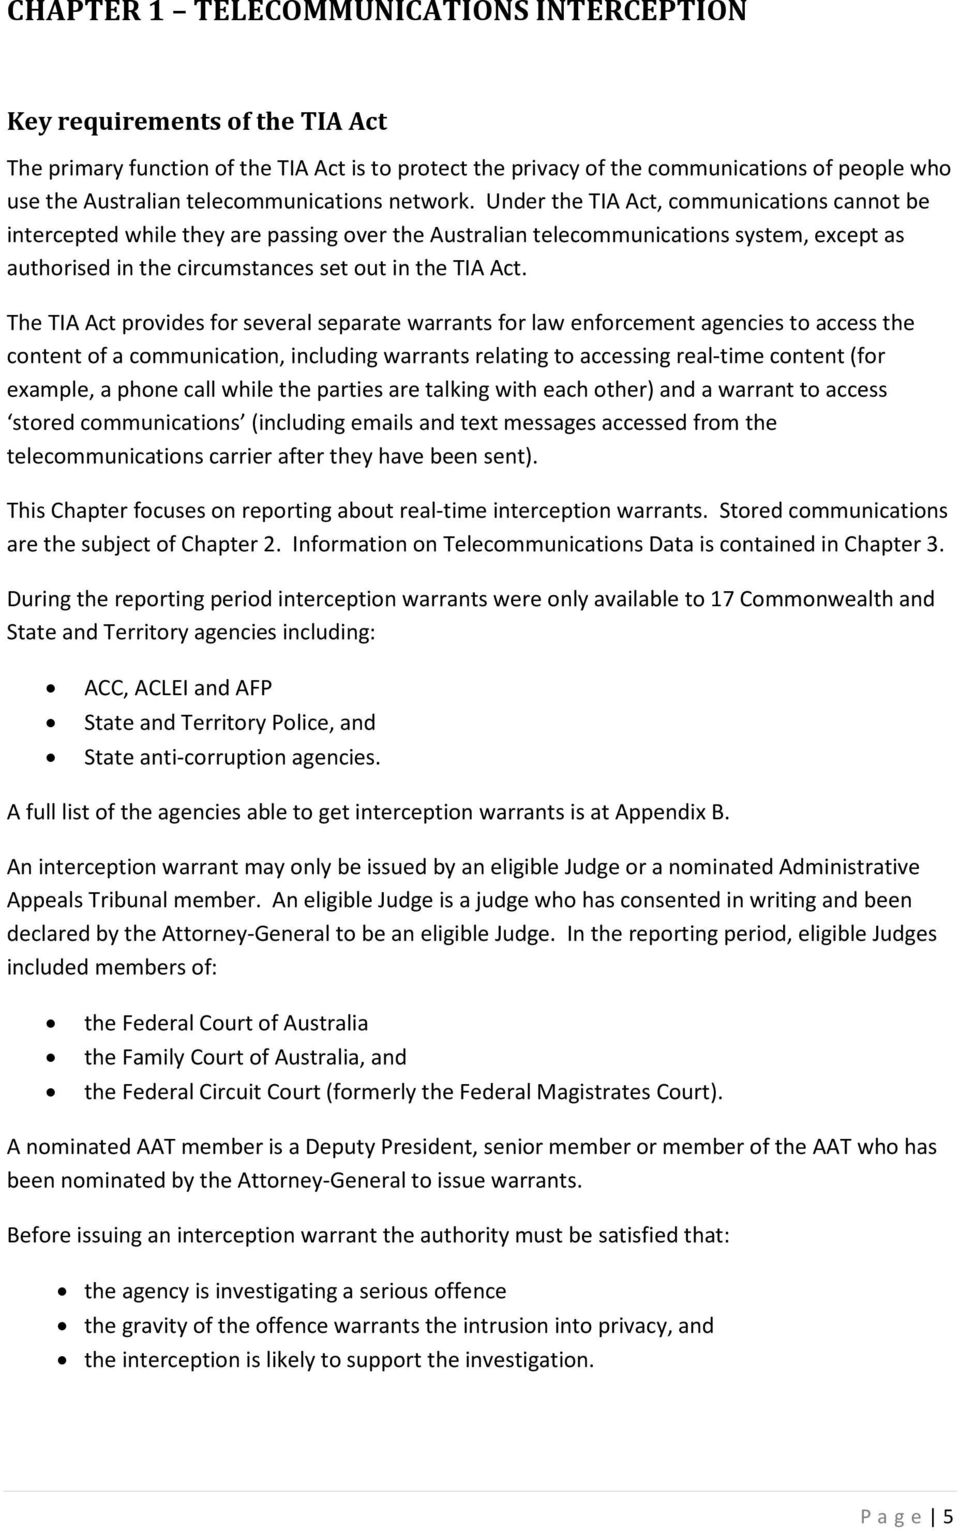 Under the TIA Act, communications cannot be intercepted while they are passing over the Australian telecommunications system, except as authorised in the circumstances set out in the TIA Act.